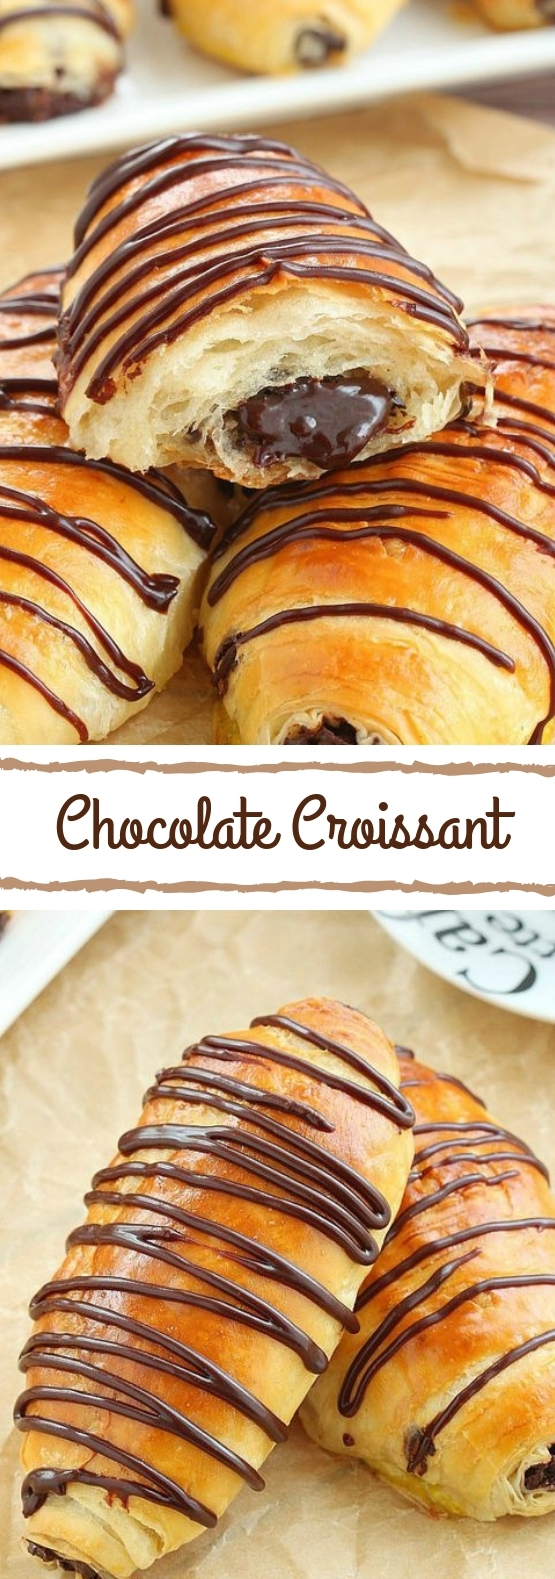 Pain Au Chocolat (Chocolate Croissants) Made From Scratch #croissant #chocolate